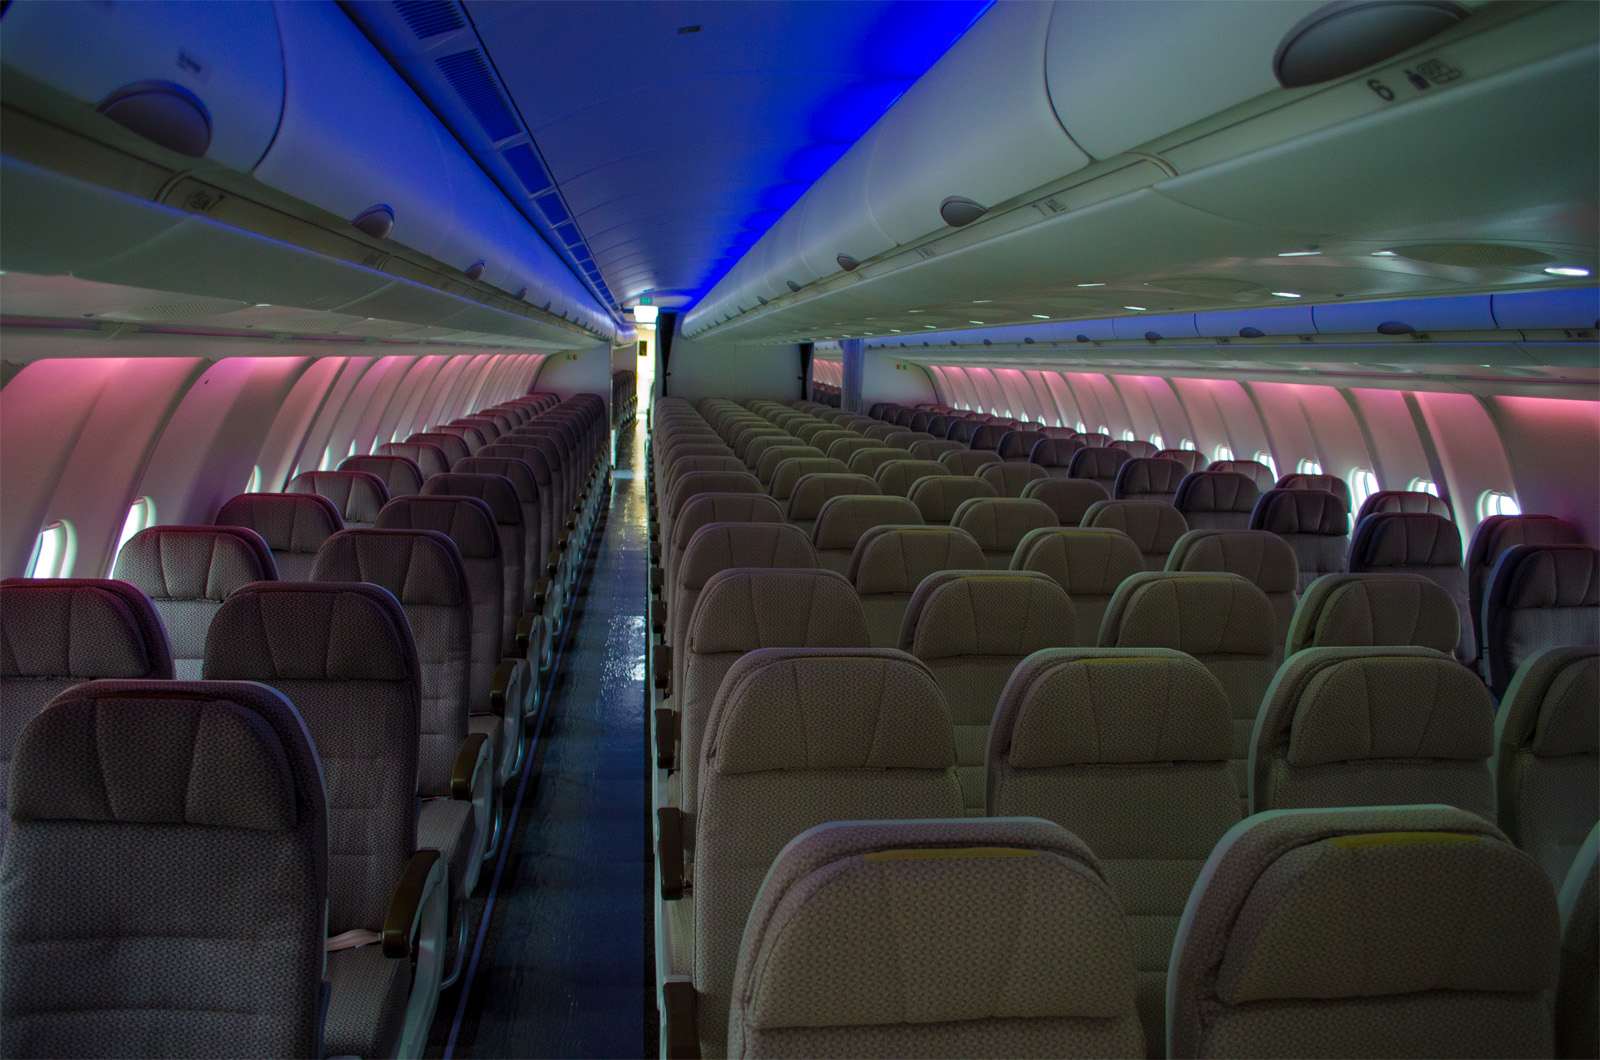 The LED lighting in economy